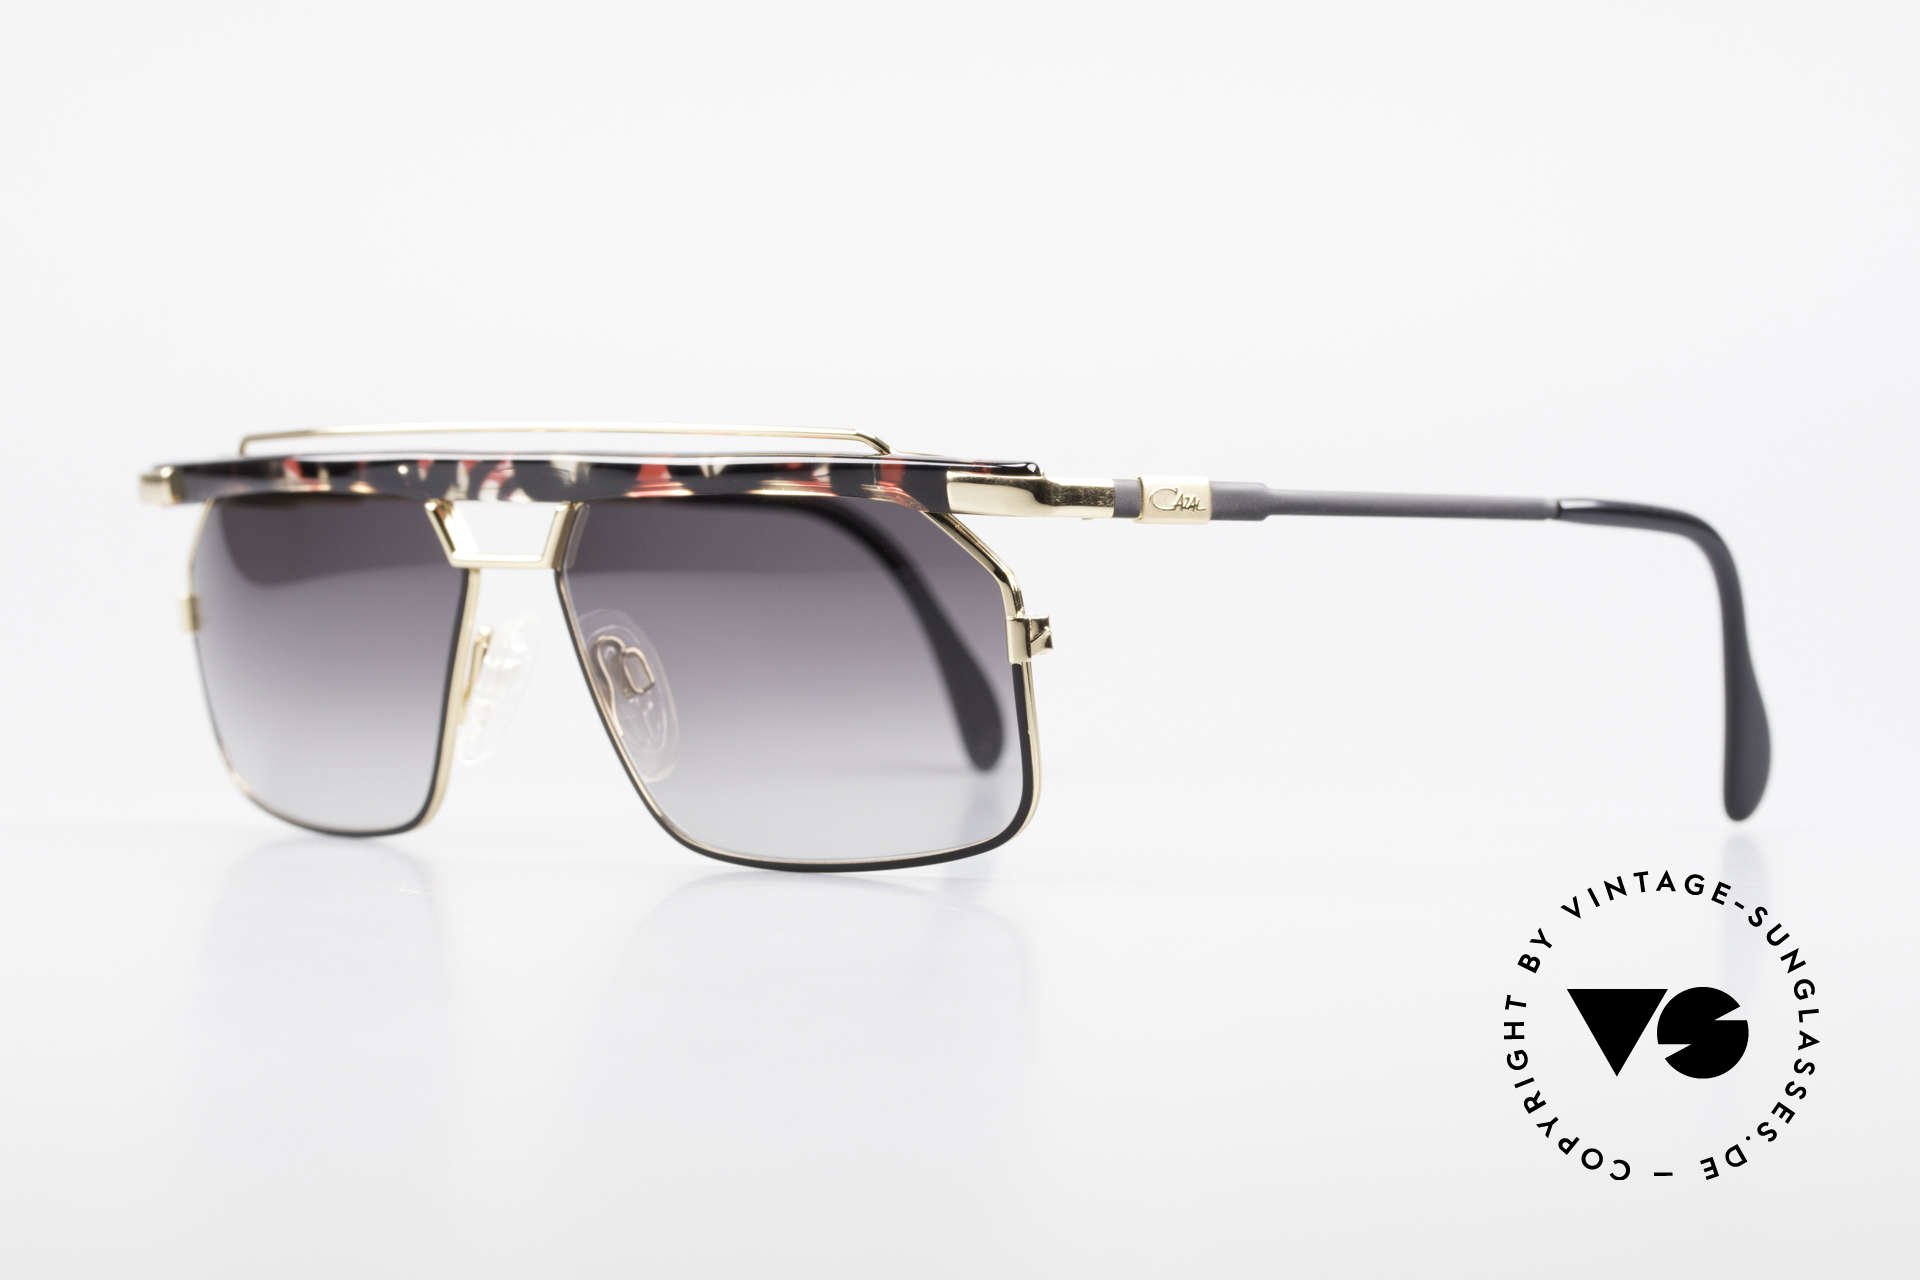 Cazal 752 Ultra Rare Vintage Sunglasses, extremely RARE (made in a small quantity only), Made for Men